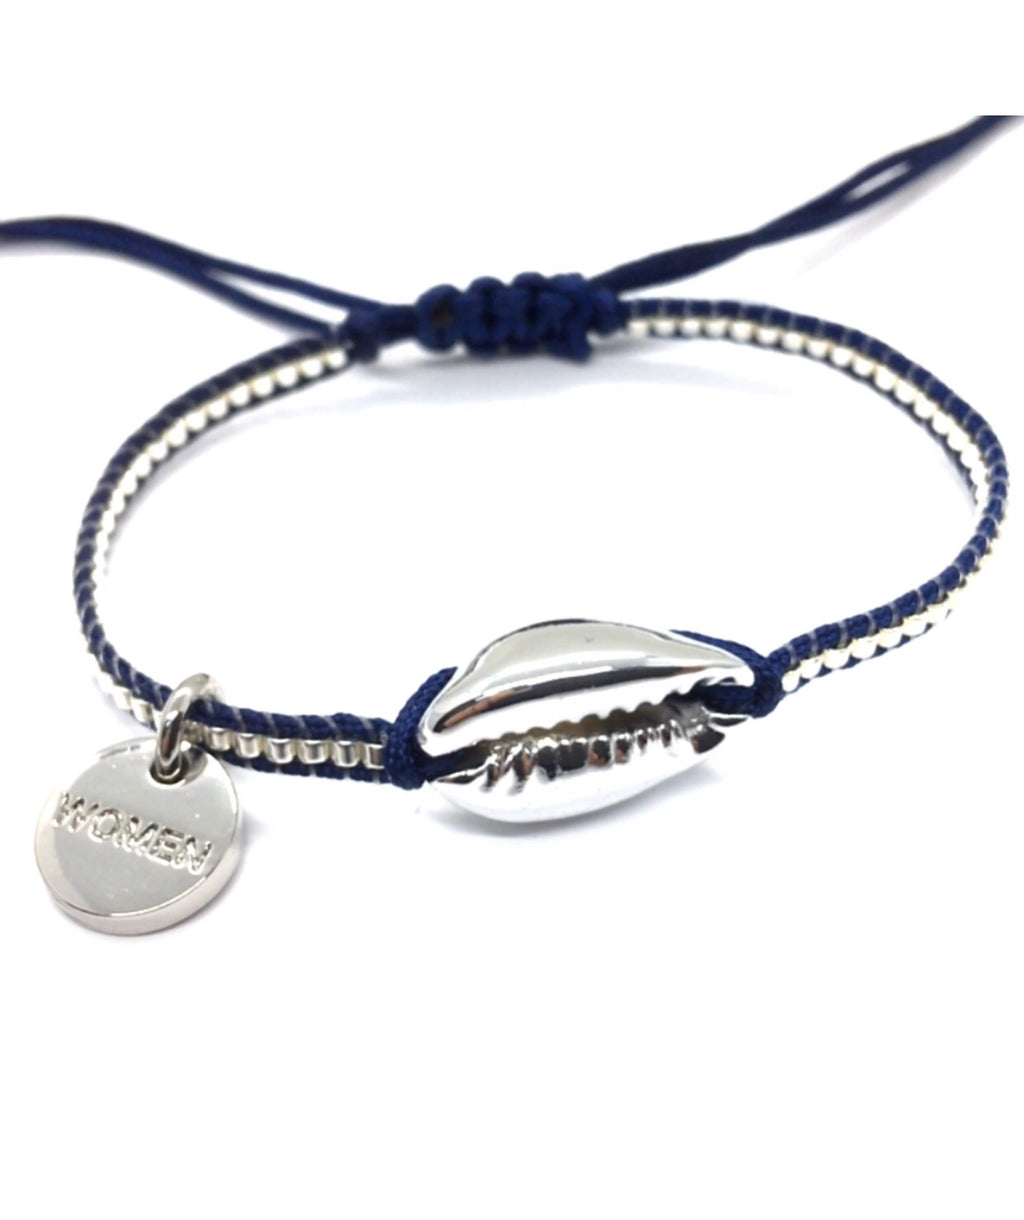 Silver shell bracelet, with silver Miyuki beads, and dark blue cord